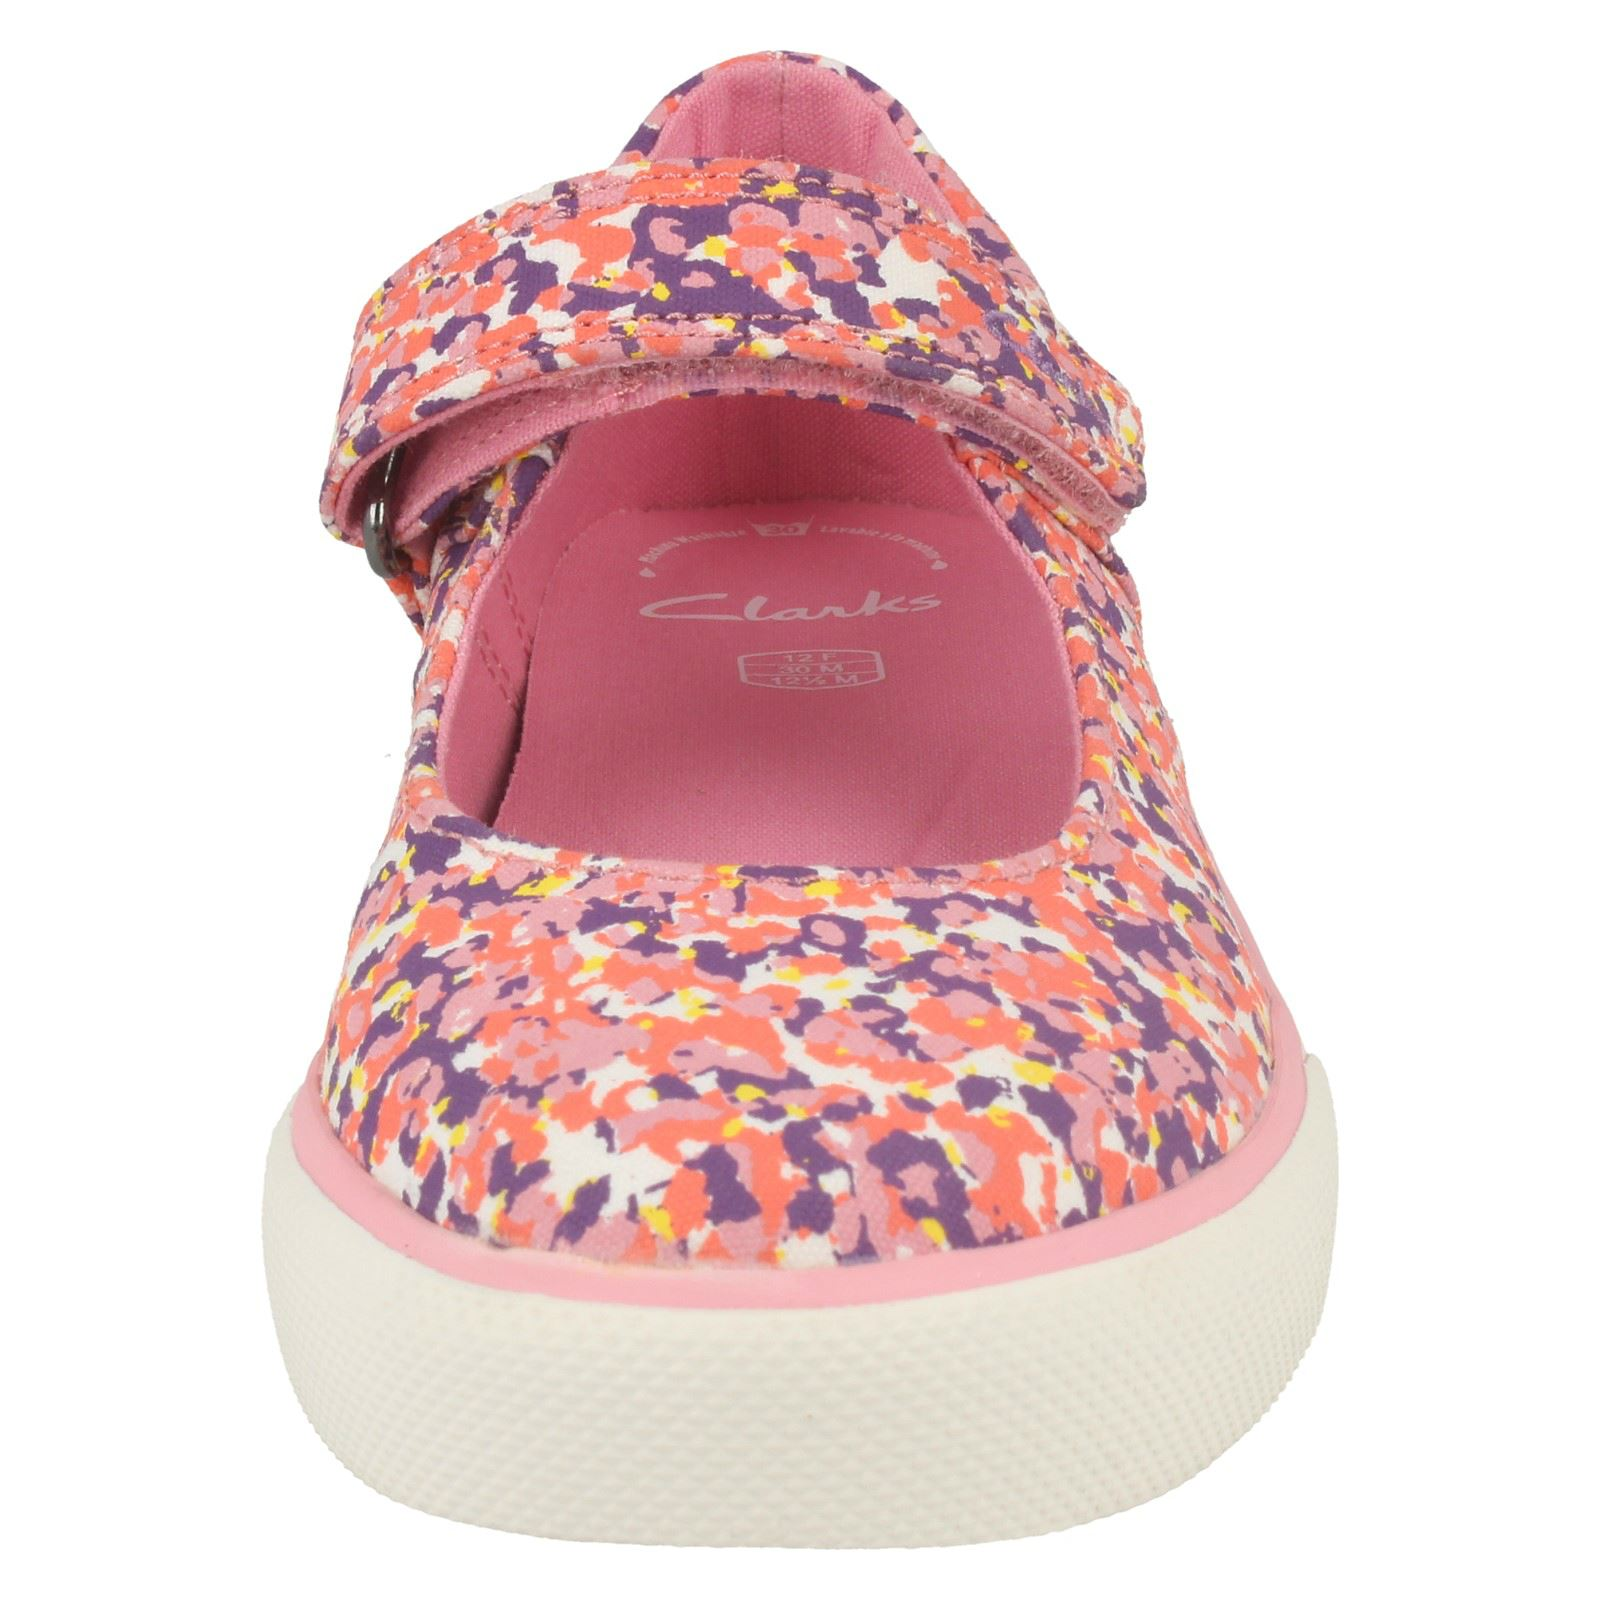 Girls Clarks Casual Flat Shoes - 'Brill Gem'